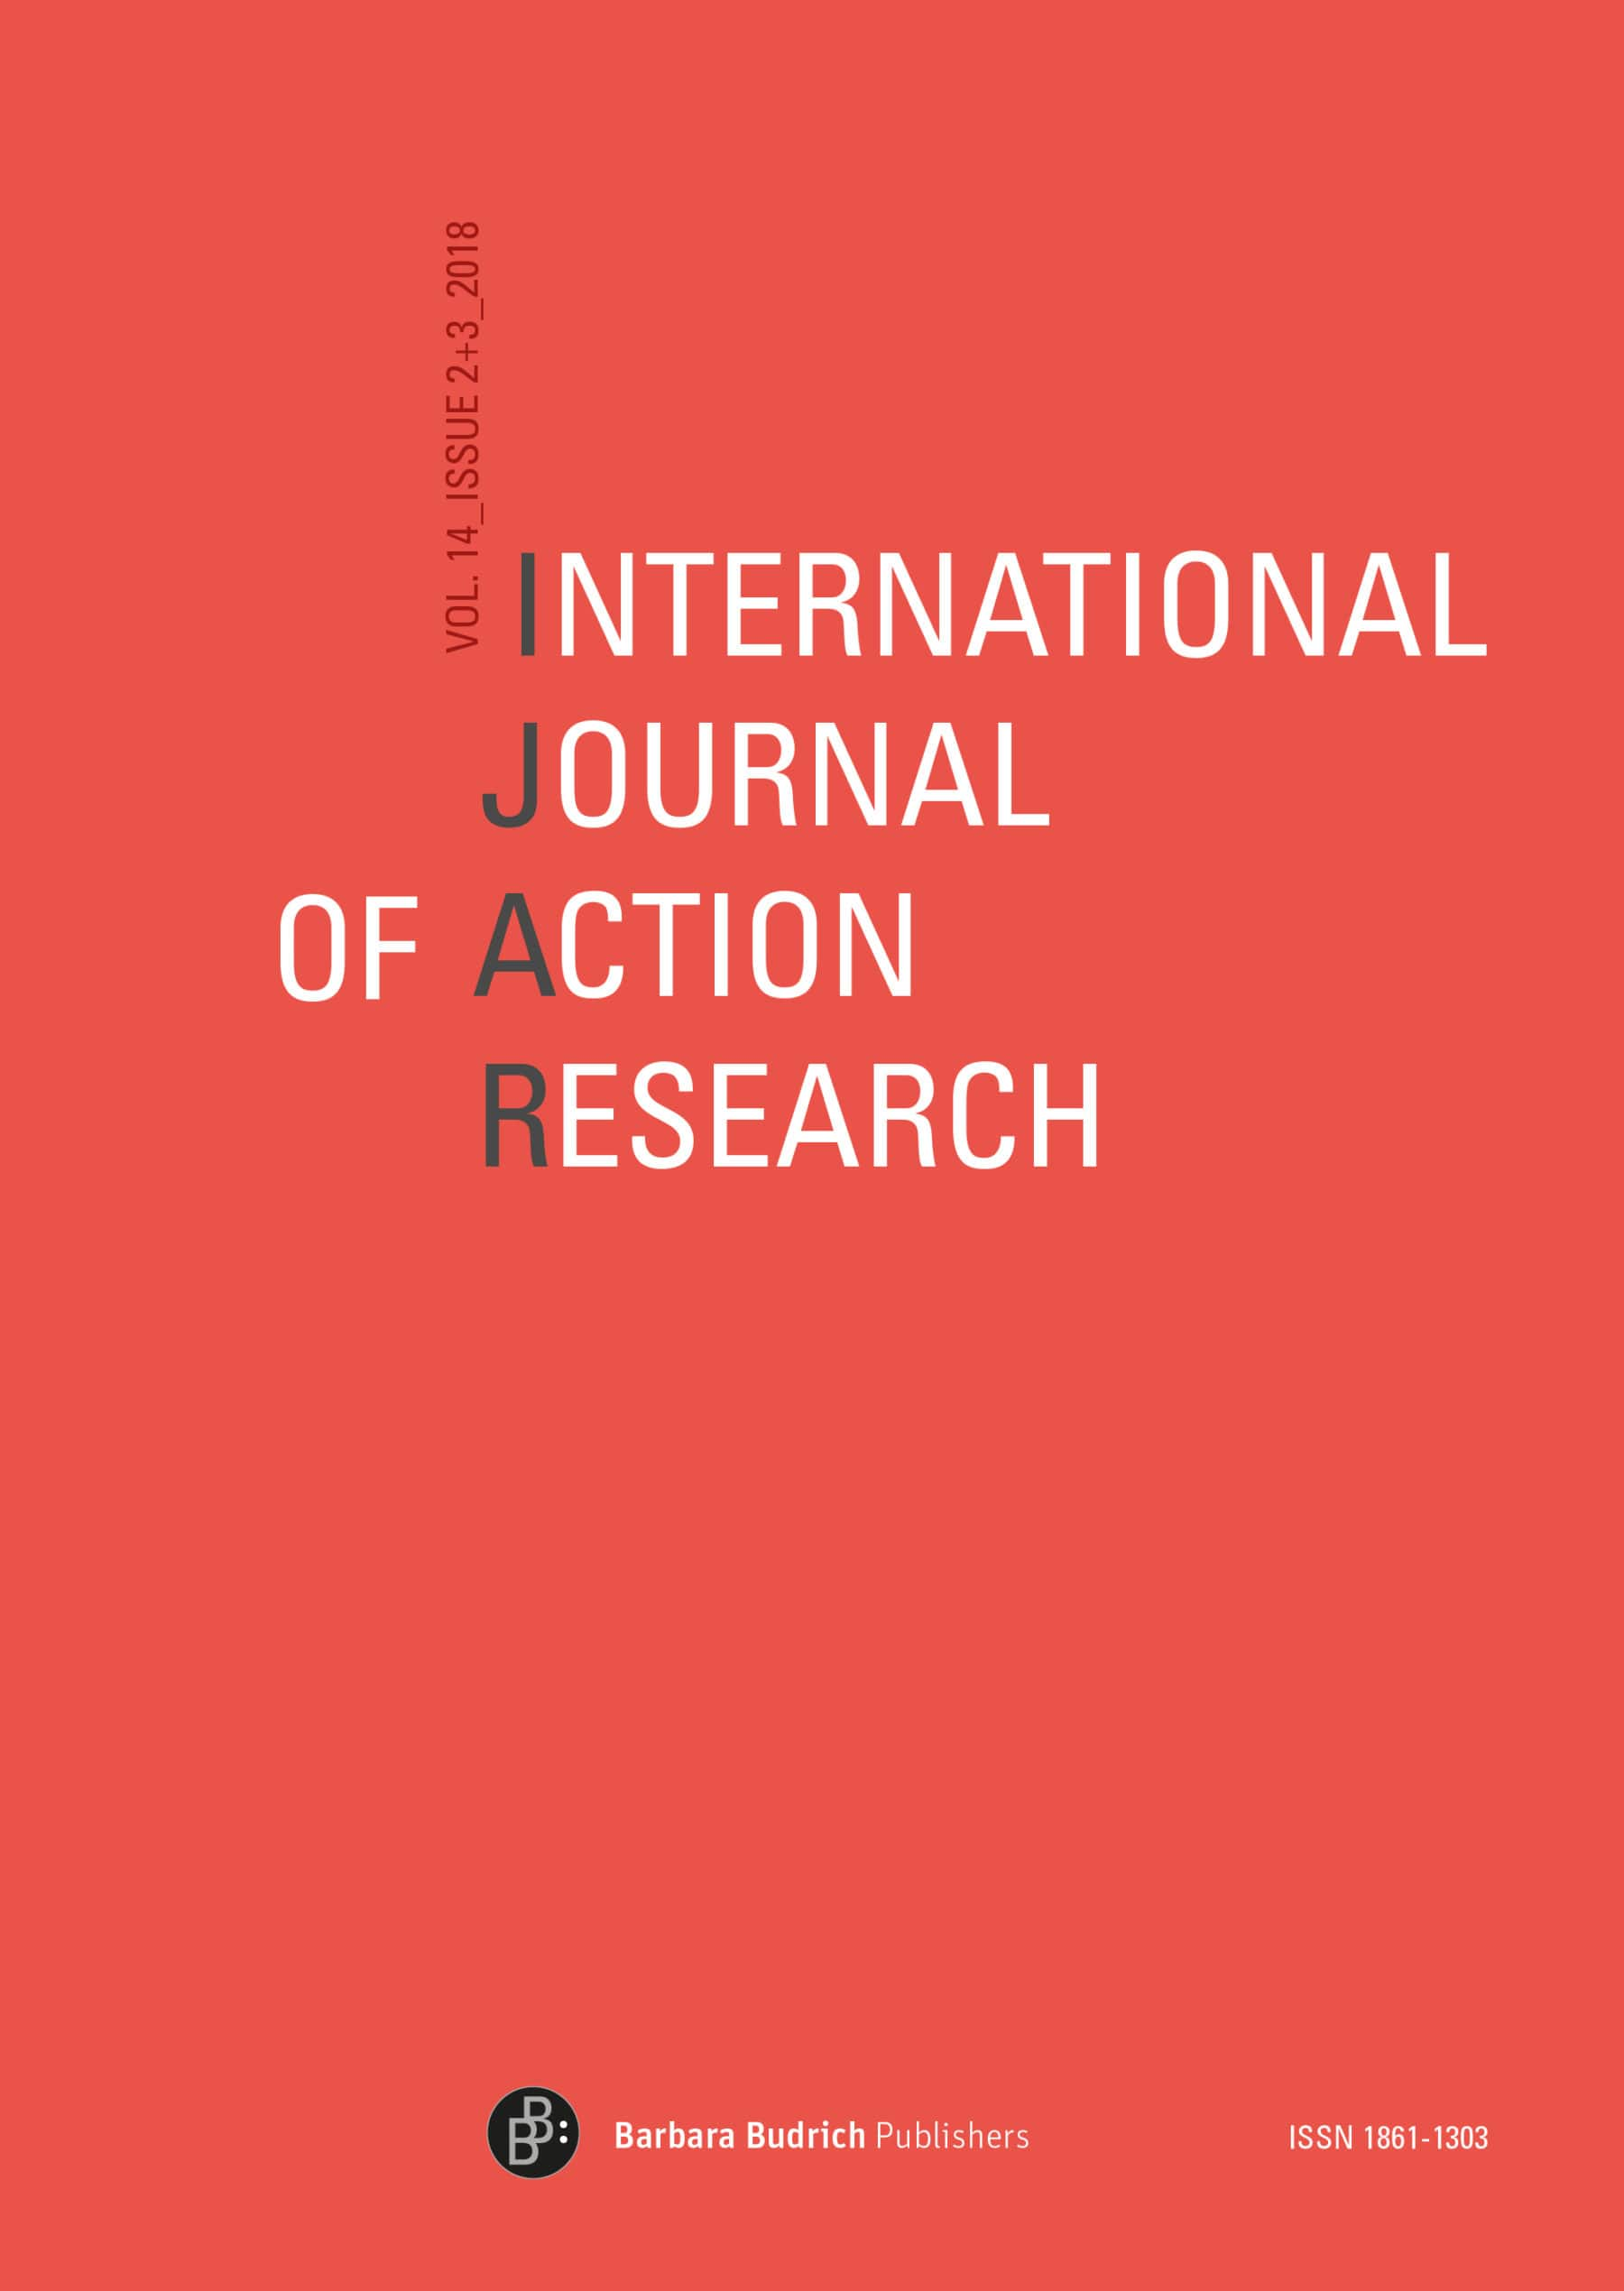 IJAR – International Journal of Action Research 2+3-2019: